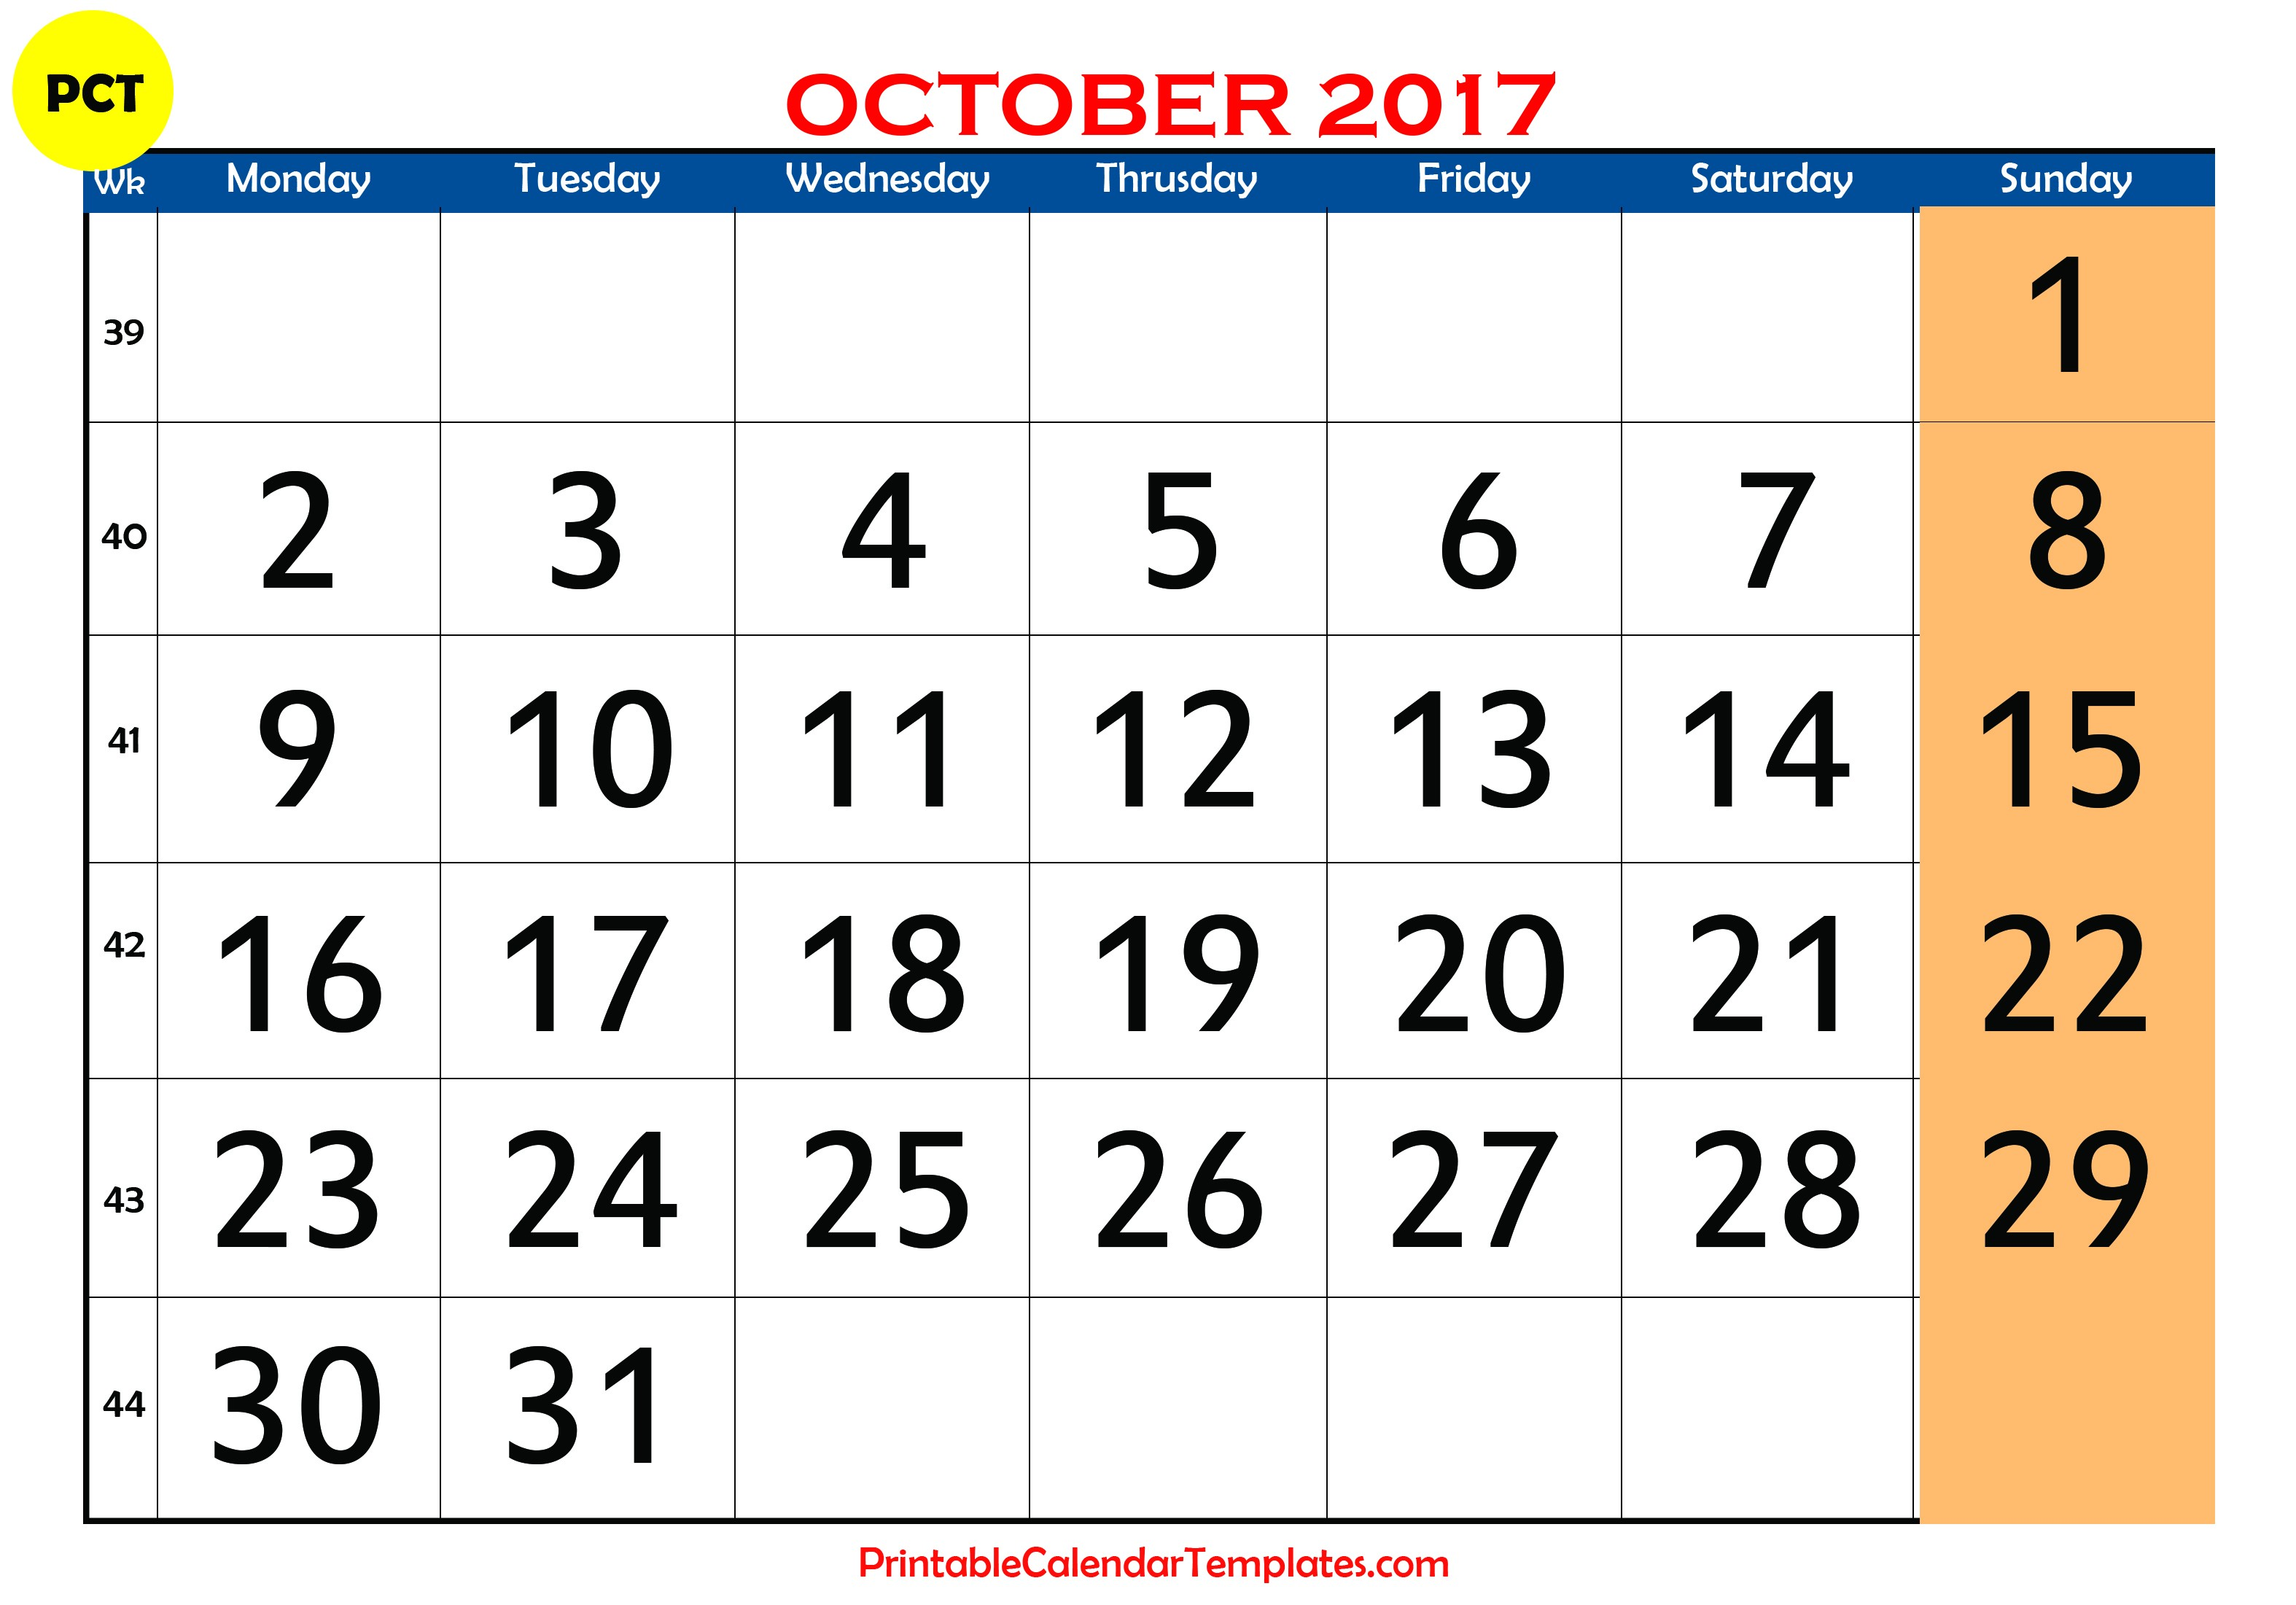 Calendar Templates October : October calendar printable templates